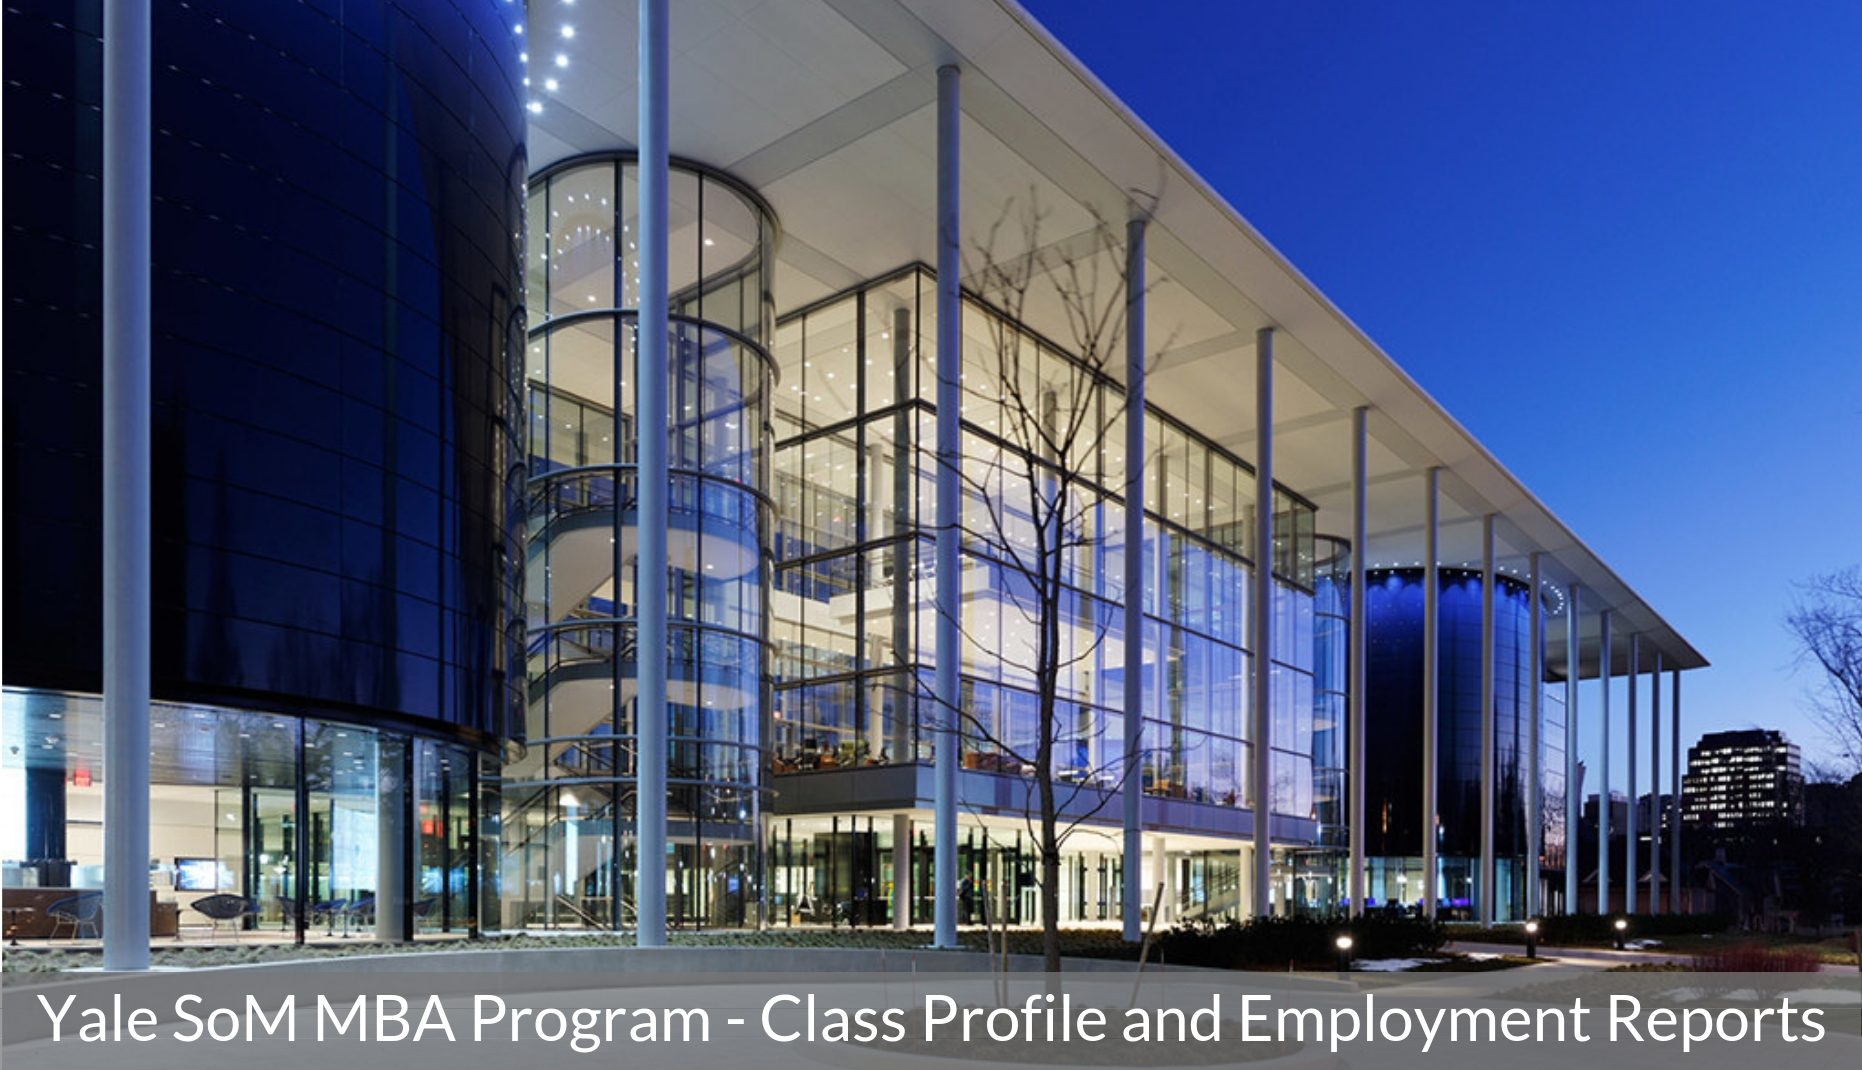 Yale School of Management - Yale SoM MBA Program - Class Profile, Career and Employment Report